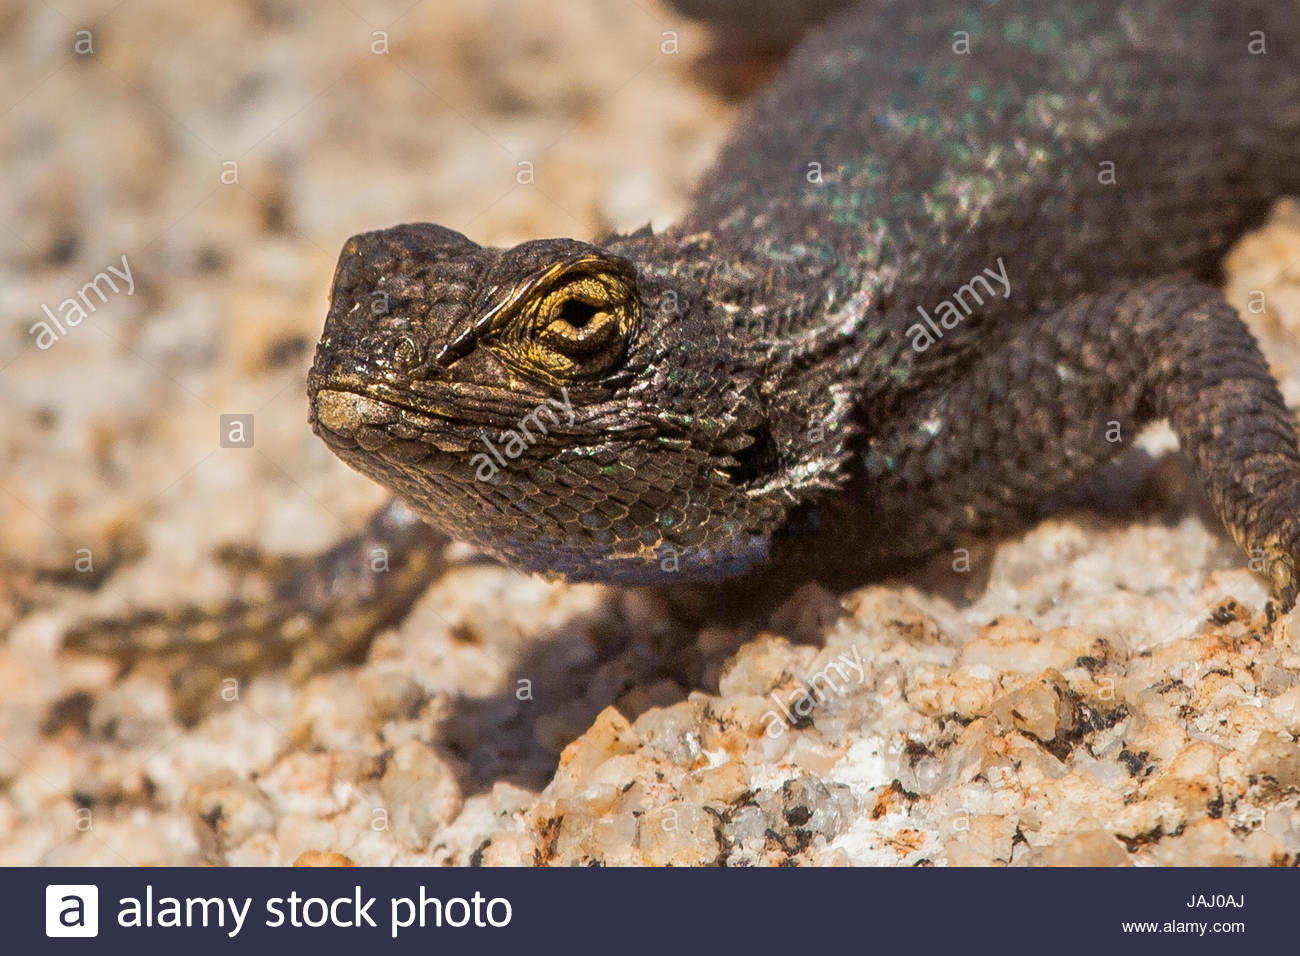 Close up of a western fence lizard, Sceloporus occidentalis, basking on a bolder. - Stock Image